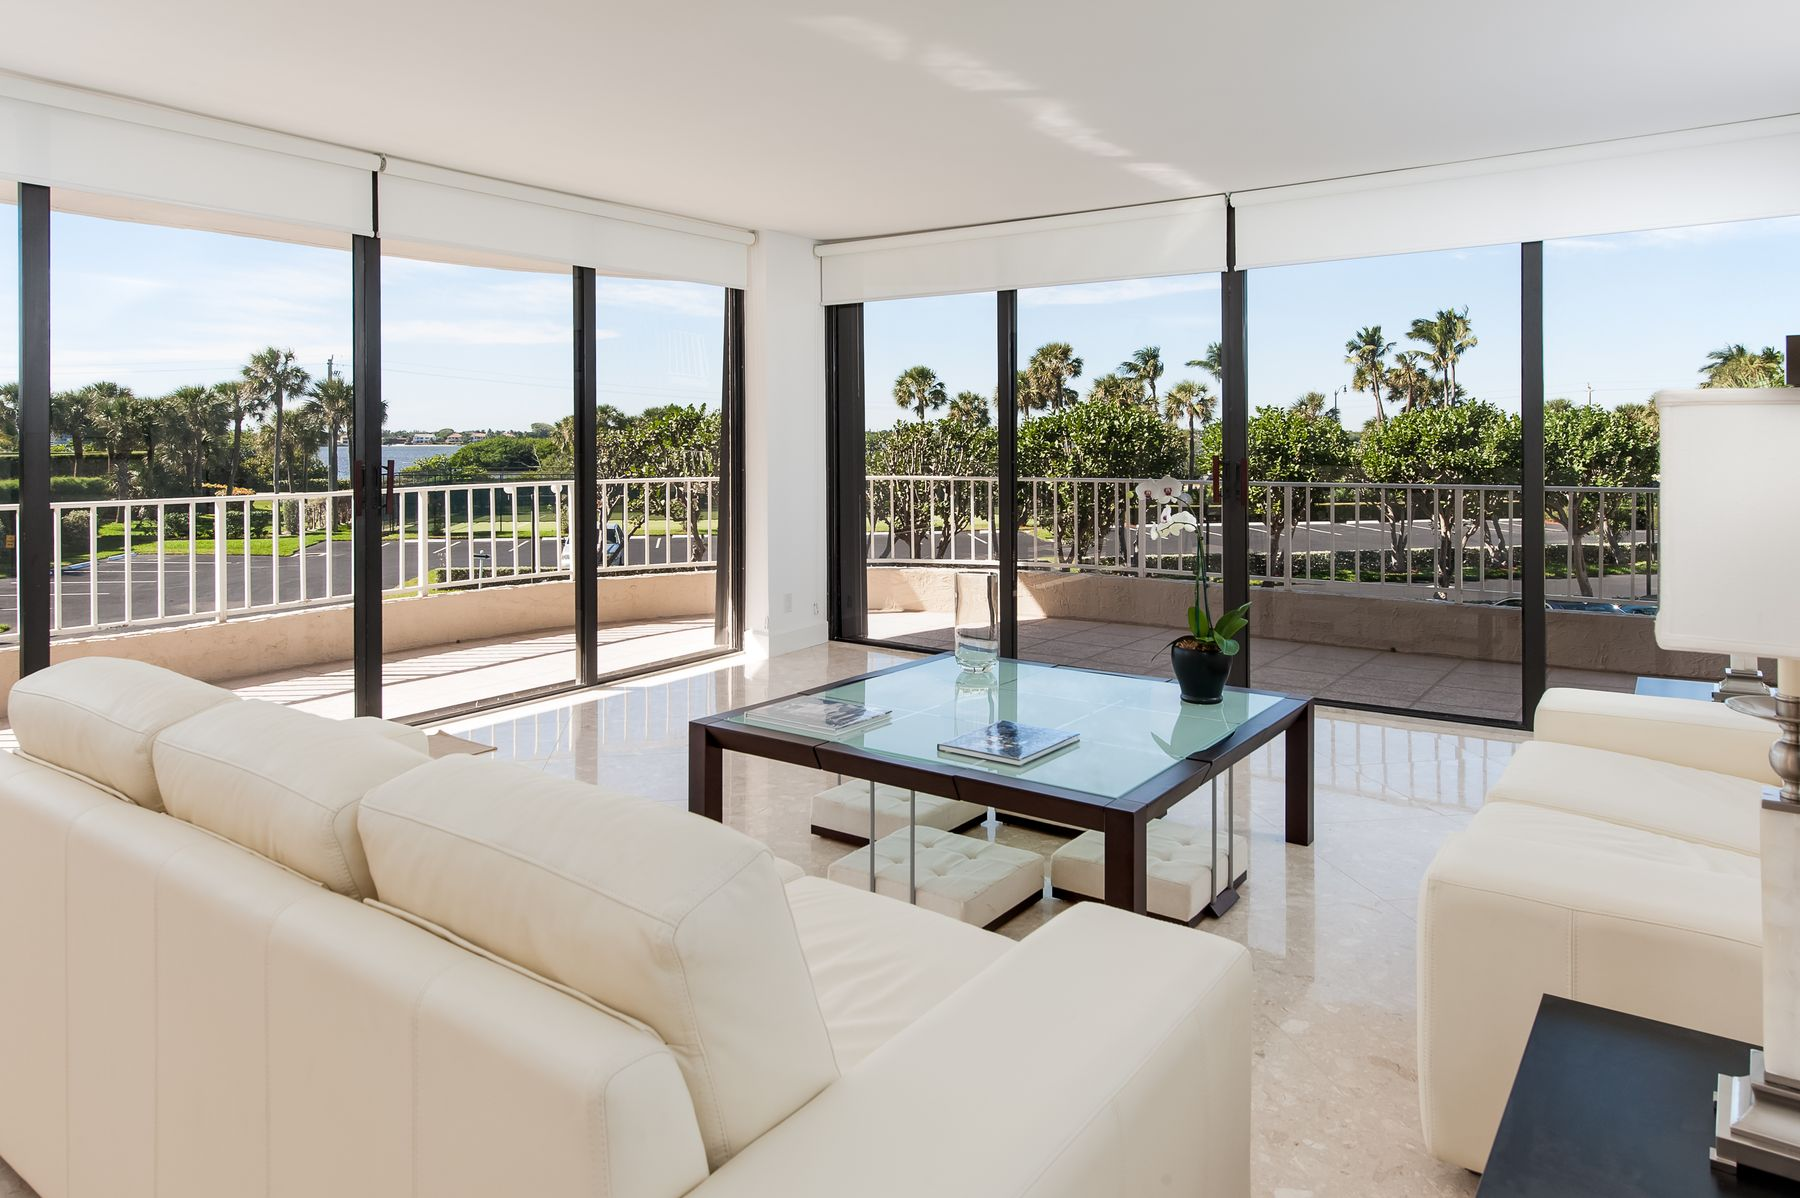 Property for Sale at The Atriums - Palm Beach Ocean Front 3400 S Ocean Blvd 1 H Ii Palm Beach, Florida 33480 United States